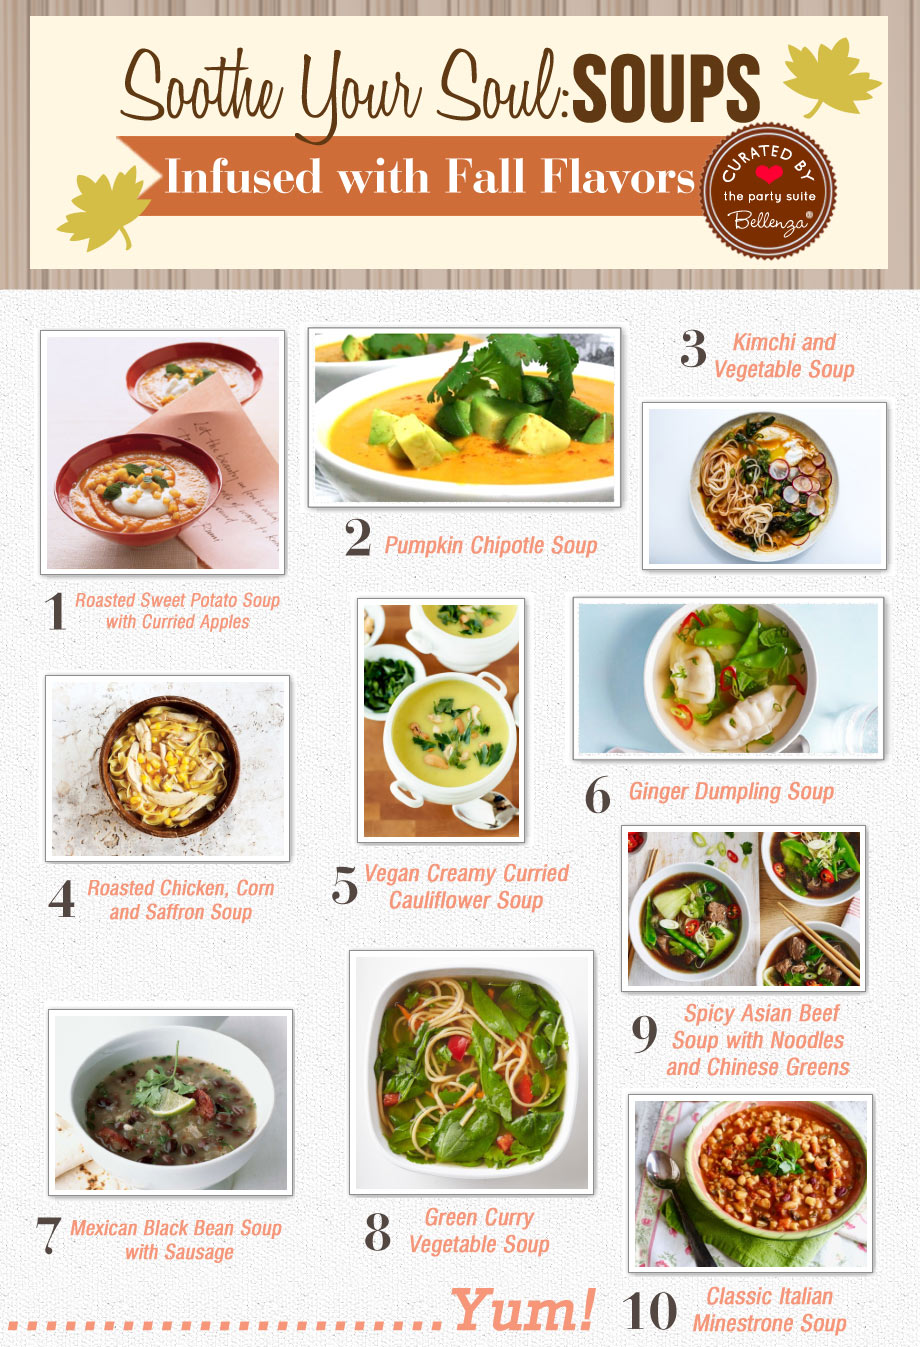 Heartyy fall soups to soothe the soul from ginger dumpling to minestrone soup.